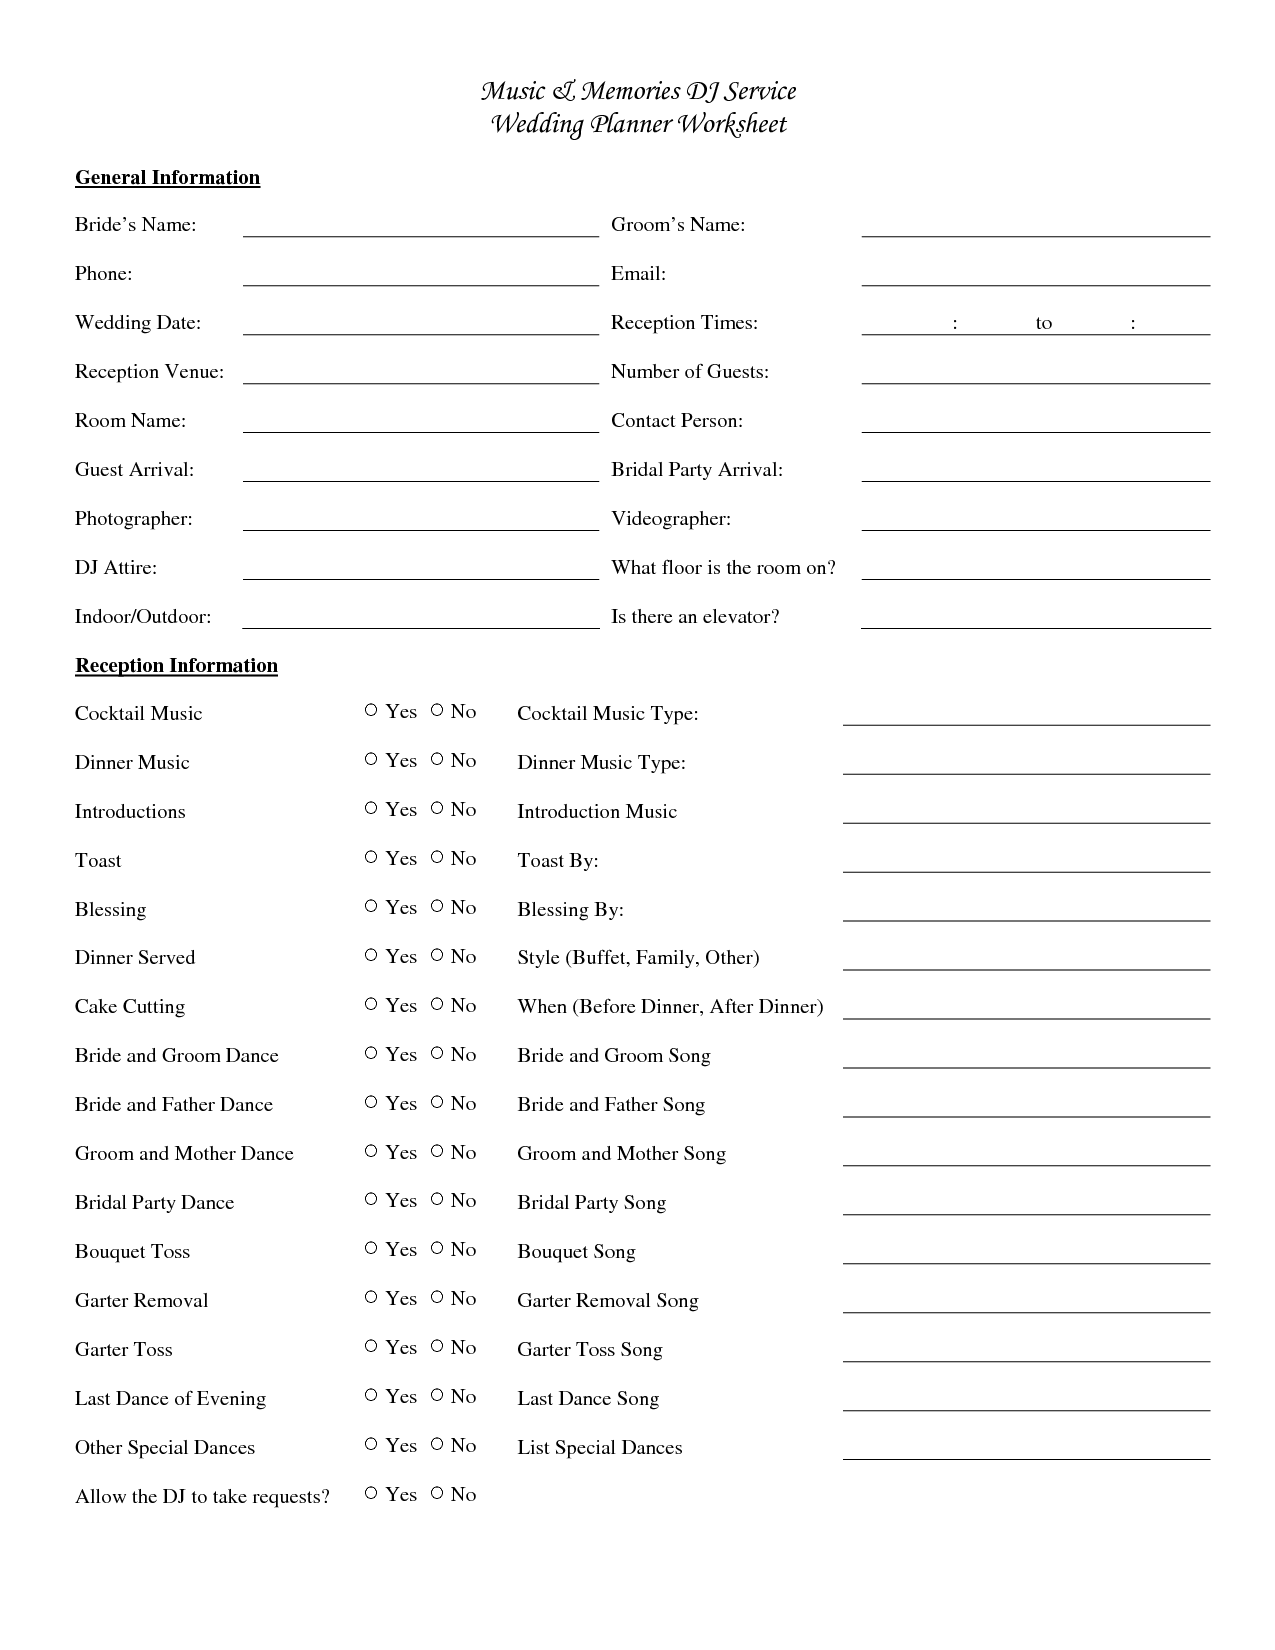 Worksheets Event Planning Worksheets wedding dj checklist music memories service planner worksheet yes no yes